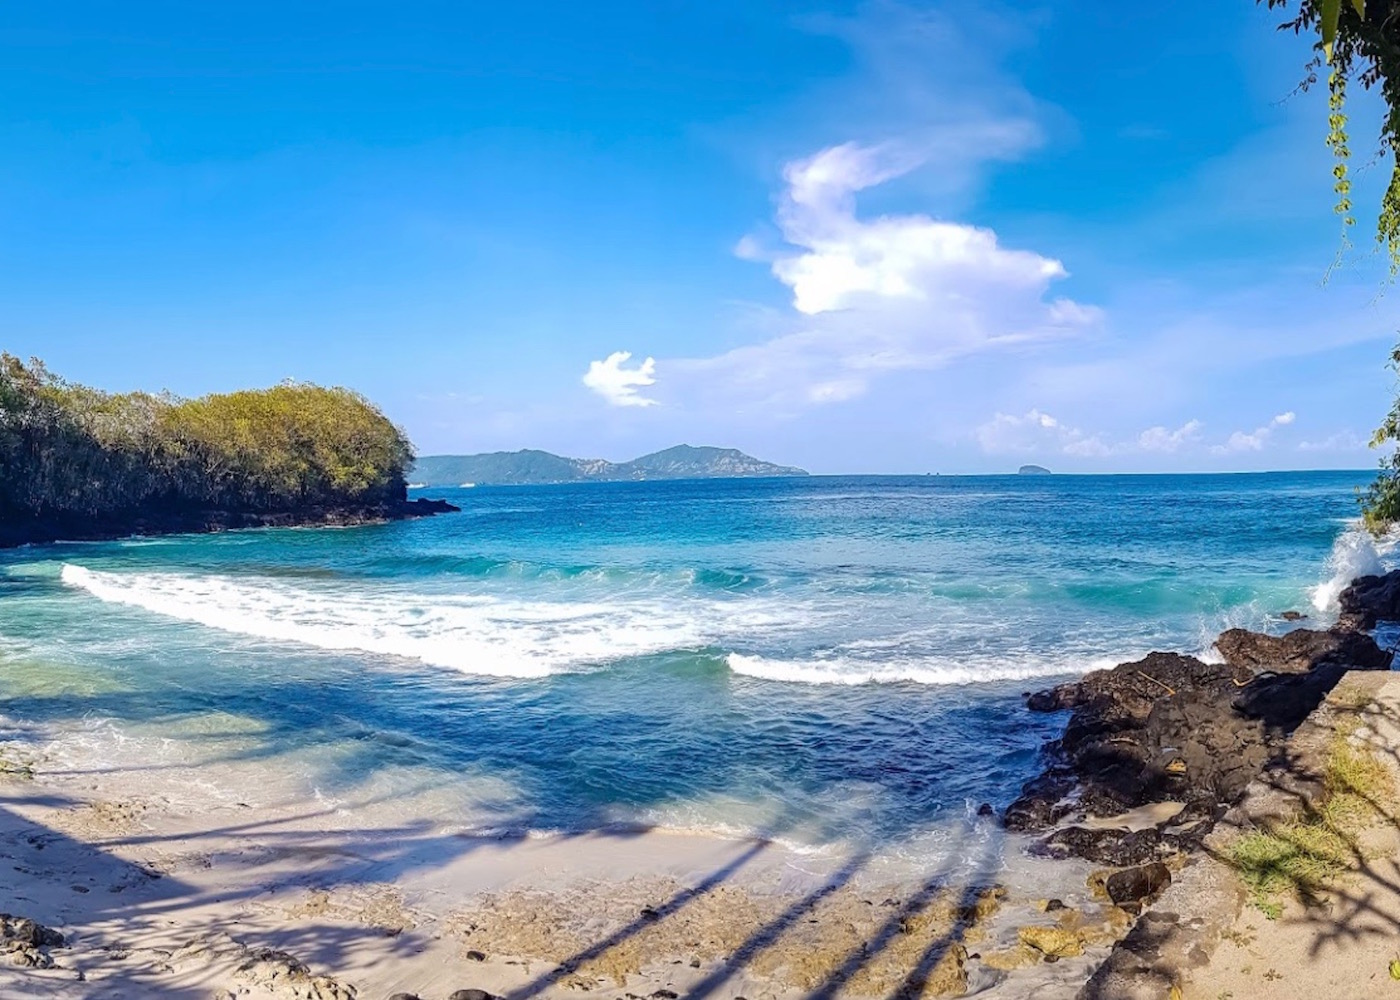 The Blue Lagoon at Padang Bai, one of Bali's best beaches